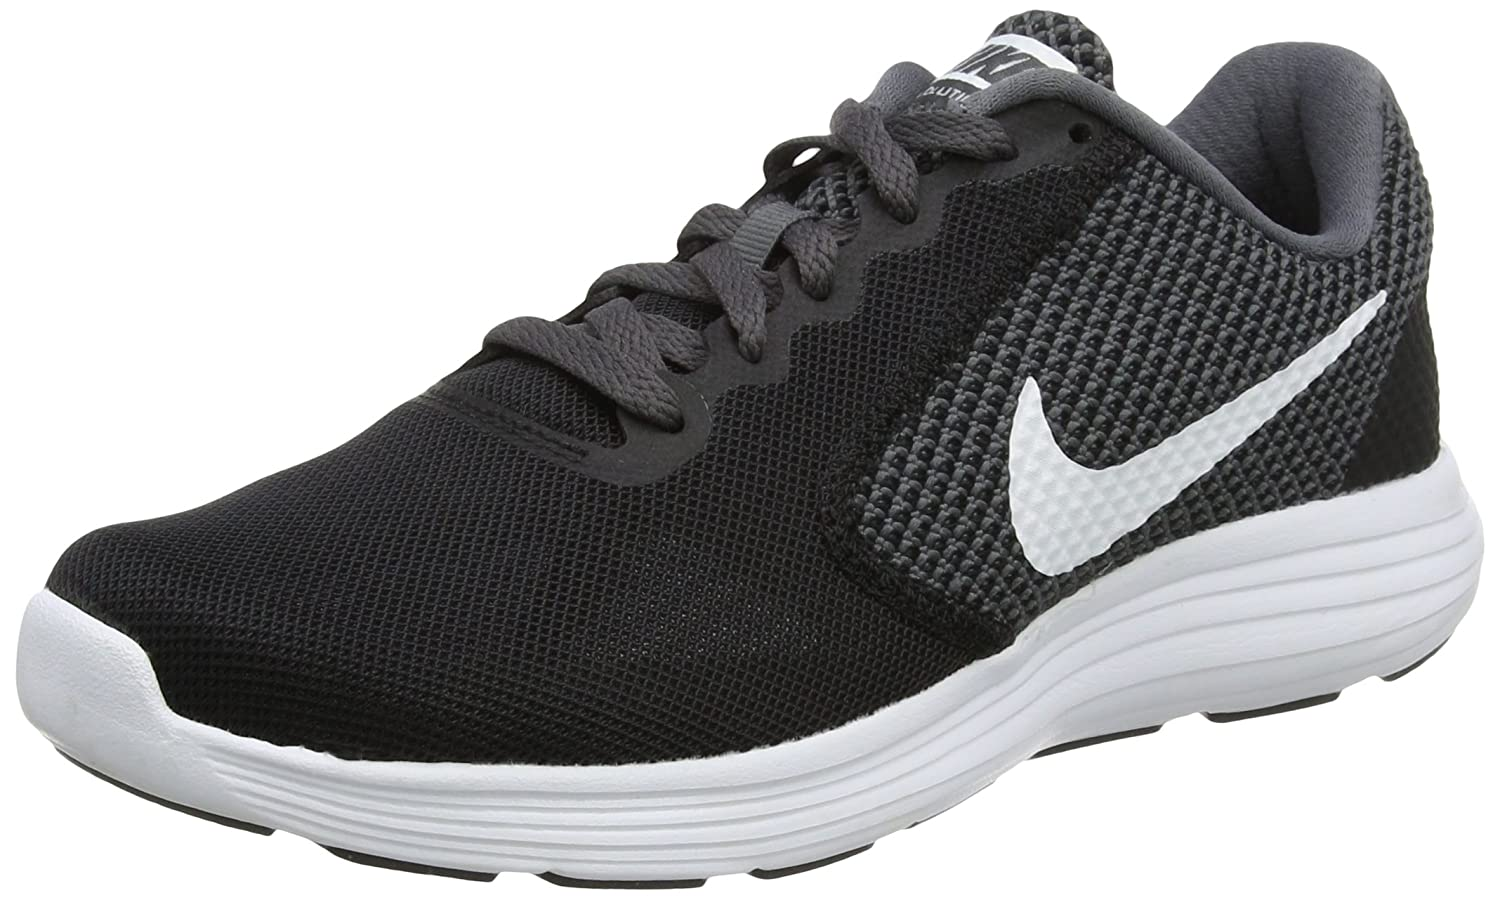 NIKE Women's Revolution 3 Running Shoe B010RSH70U 12 B(M) US|Dark Grey/White/Black